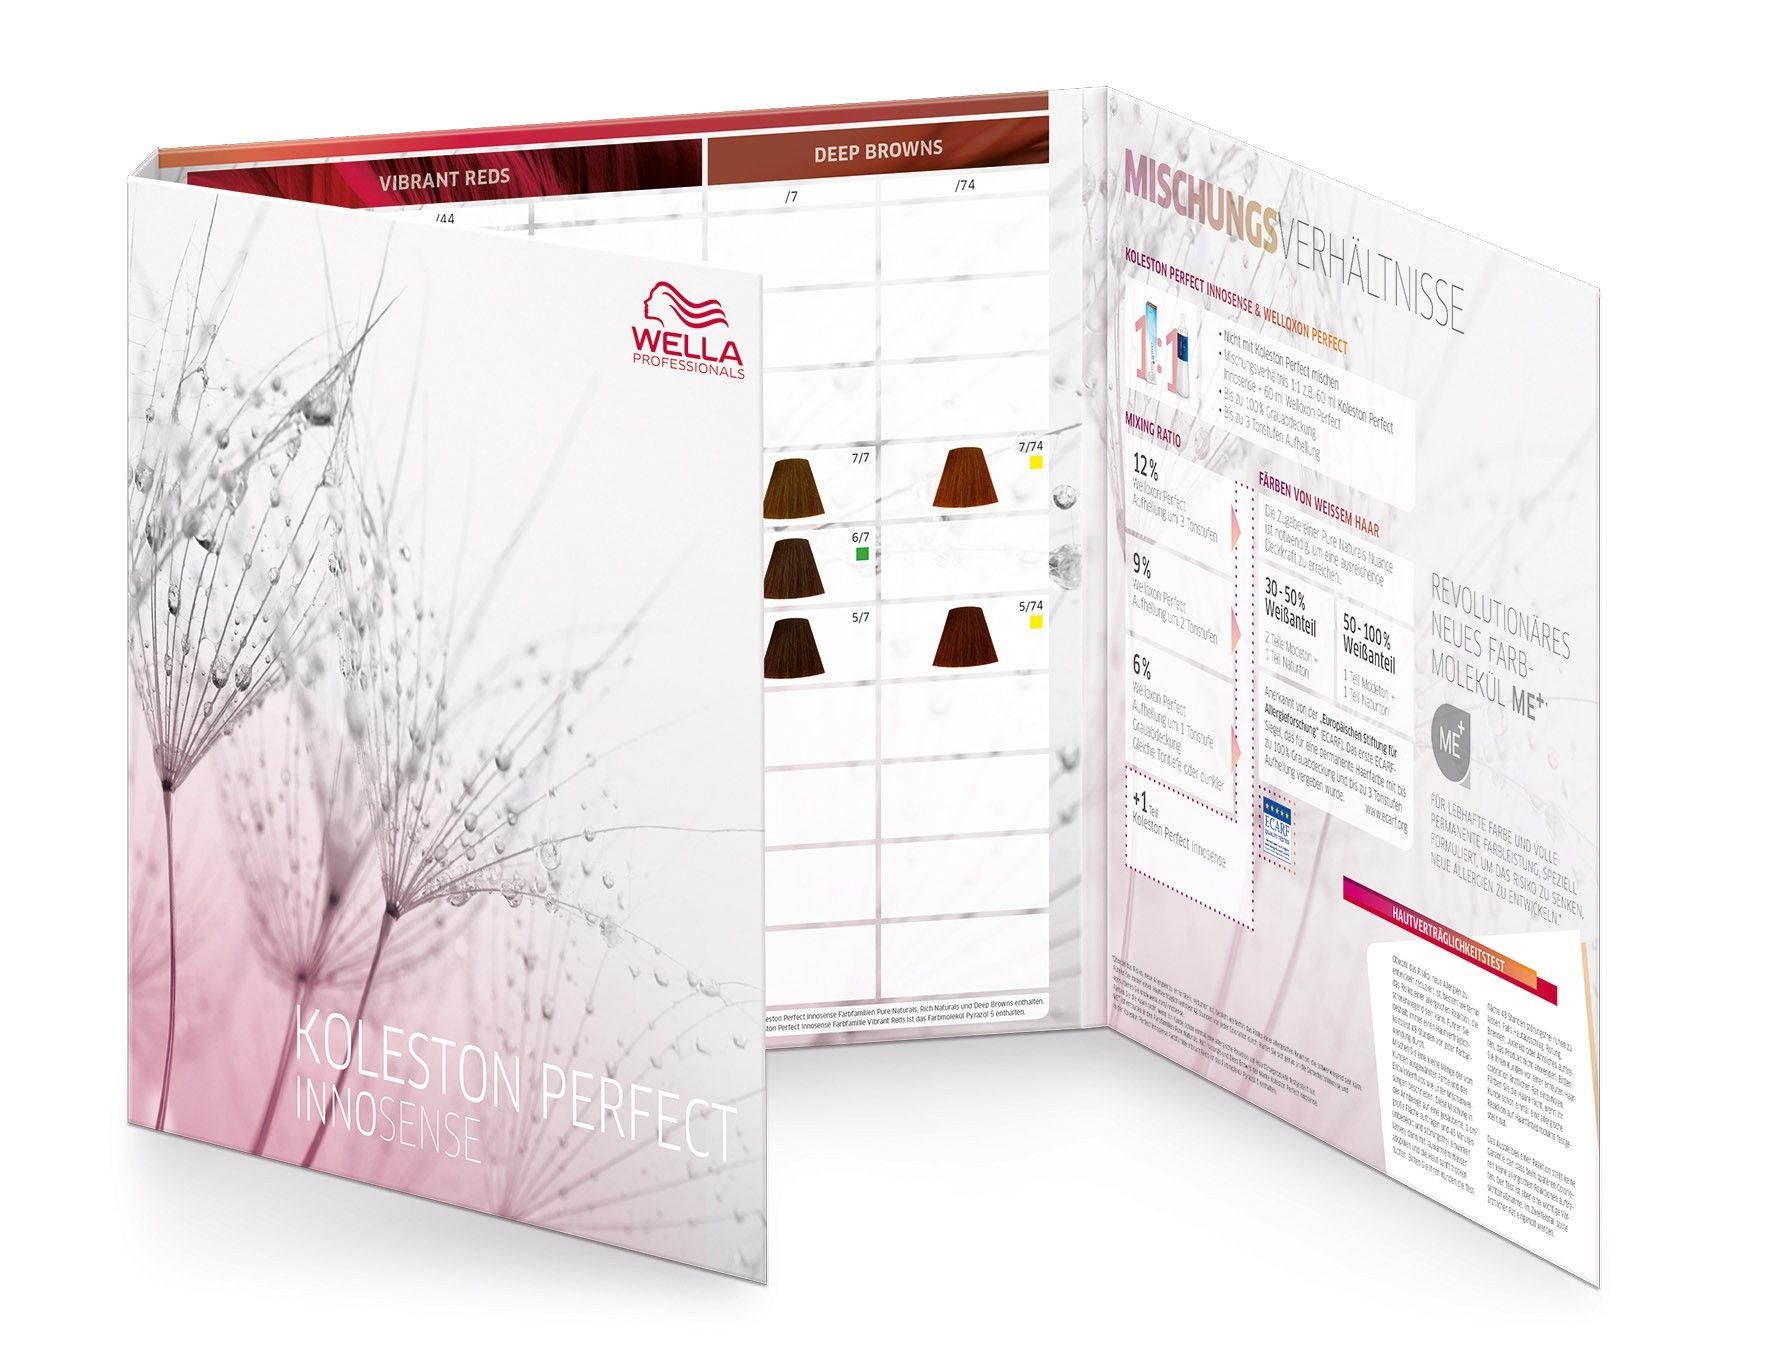 Wella professionals koleston perfect innosense color chart also de beste bildene for cover without ppt rh pinterest